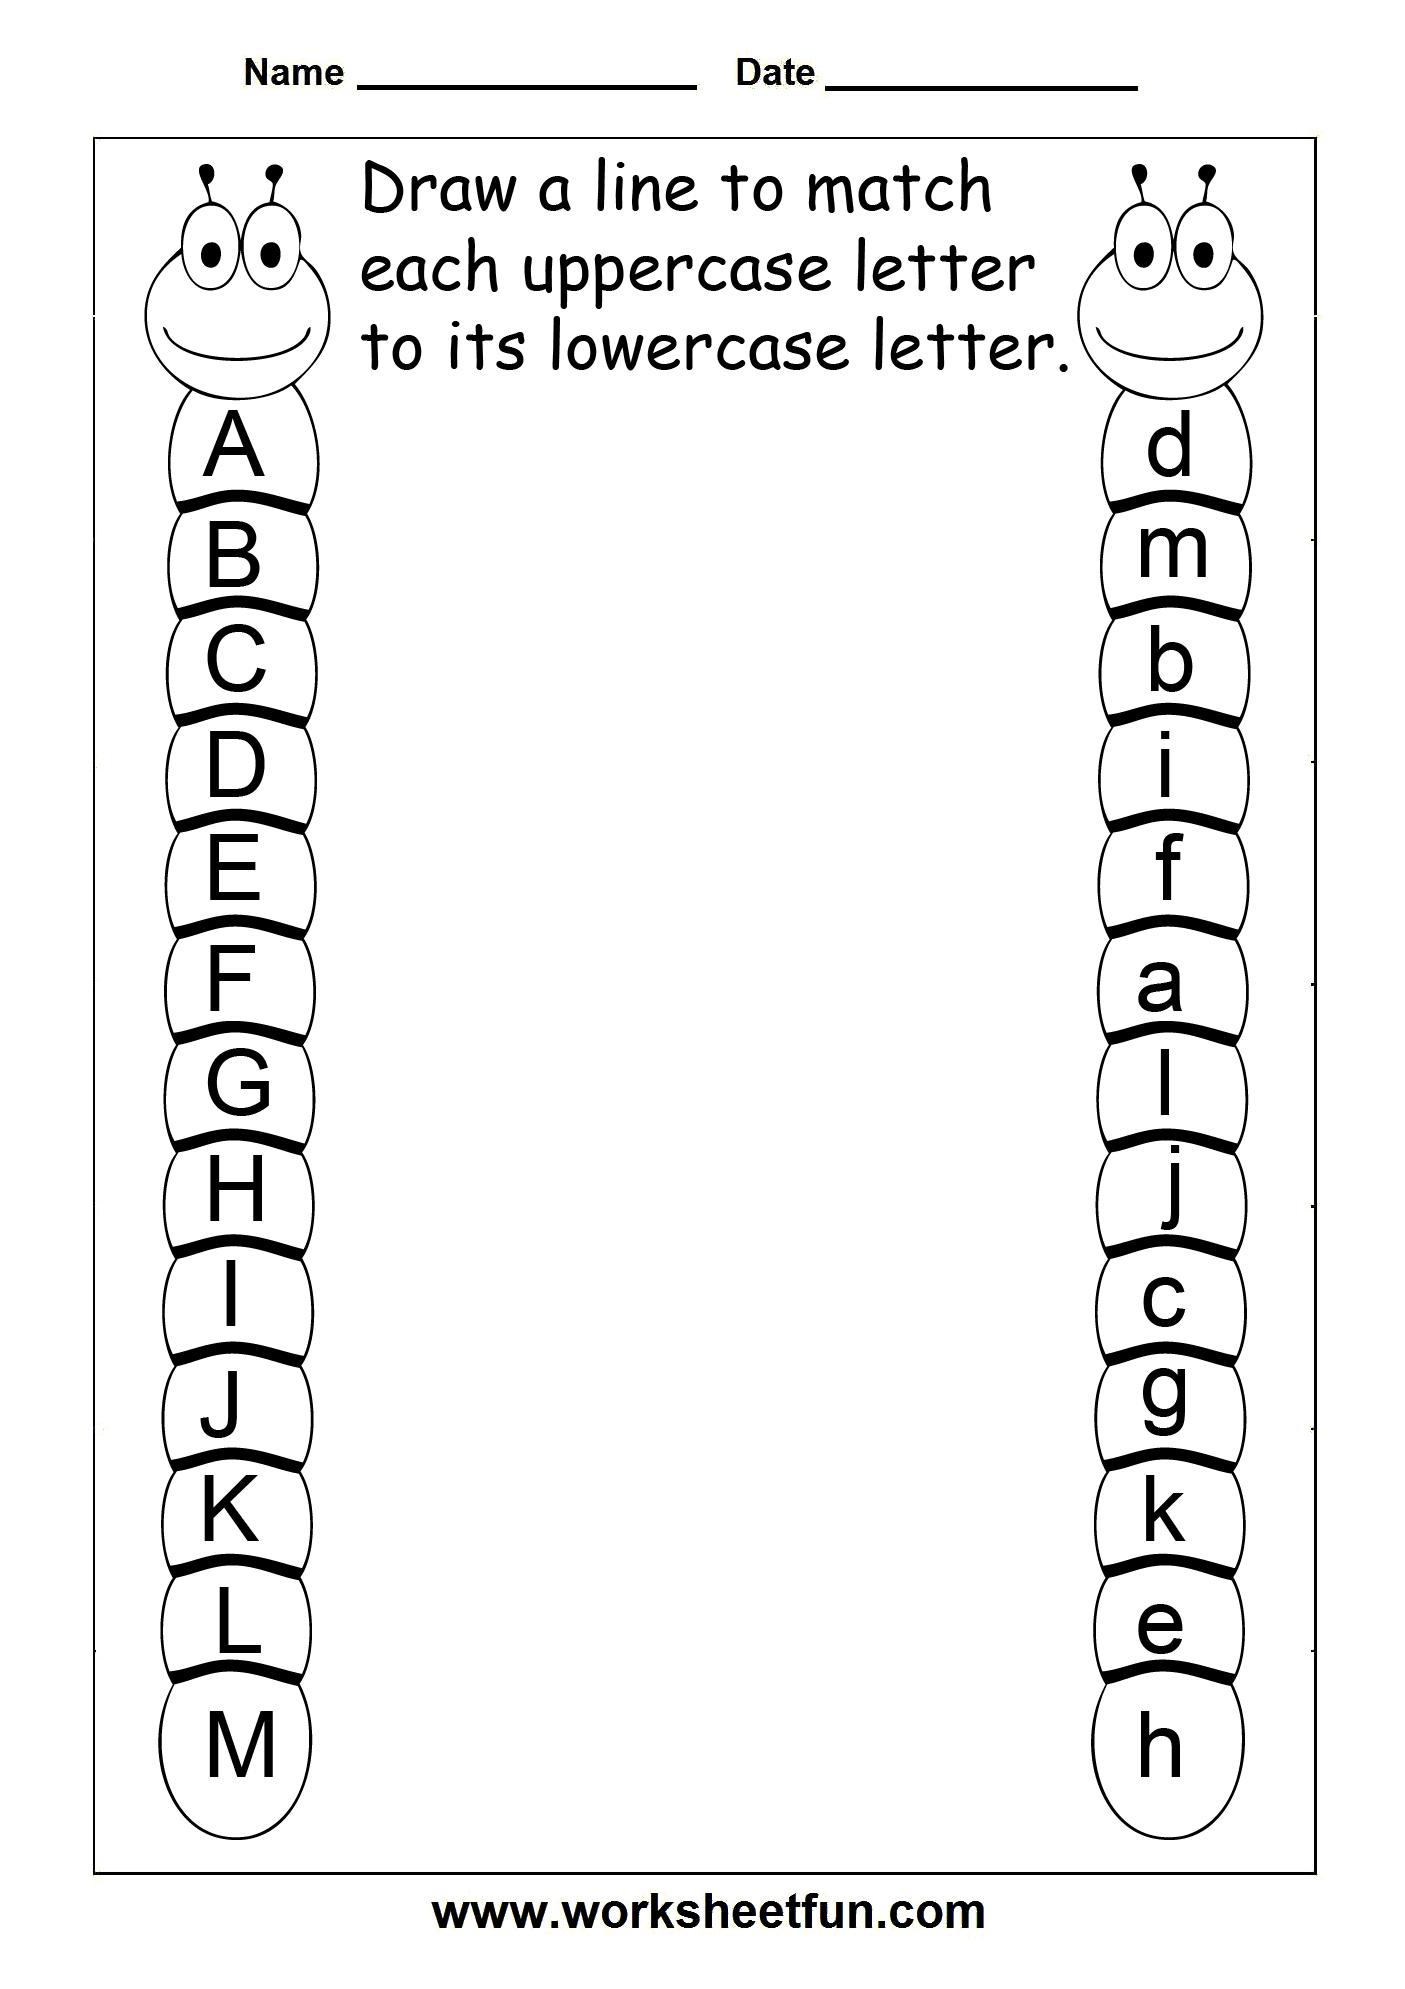 Weirdmailus  Fascinating  Images About Work Worksheet On Pinterest  Hidden Pictures  With Excellent  Images About Work Worksheet On Pinterest  Hidden Pictures Color By Numbers And Puzzles With Awesome Rounding  Digit Numbers Worksheets Also Ks Fractions Worksheet In Addition Bengali Alphabet Worksheet And Fractions For Kids Worksheets As Well As Valentine Math Worksheet Additionally Grade  Science Worksheets Free Printable From Pinterestcom With Weirdmailus  Excellent  Images About Work Worksheet On Pinterest  Hidden Pictures  With Awesome  Images About Work Worksheet On Pinterest  Hidden Pictures Color By Numbers And Puzzles And Fascinating Rounding  Digit Numbers Worksheets Also Ks Fractions Worksheet In Addition Bengali Alphabet Worksheet From Pinterestcom